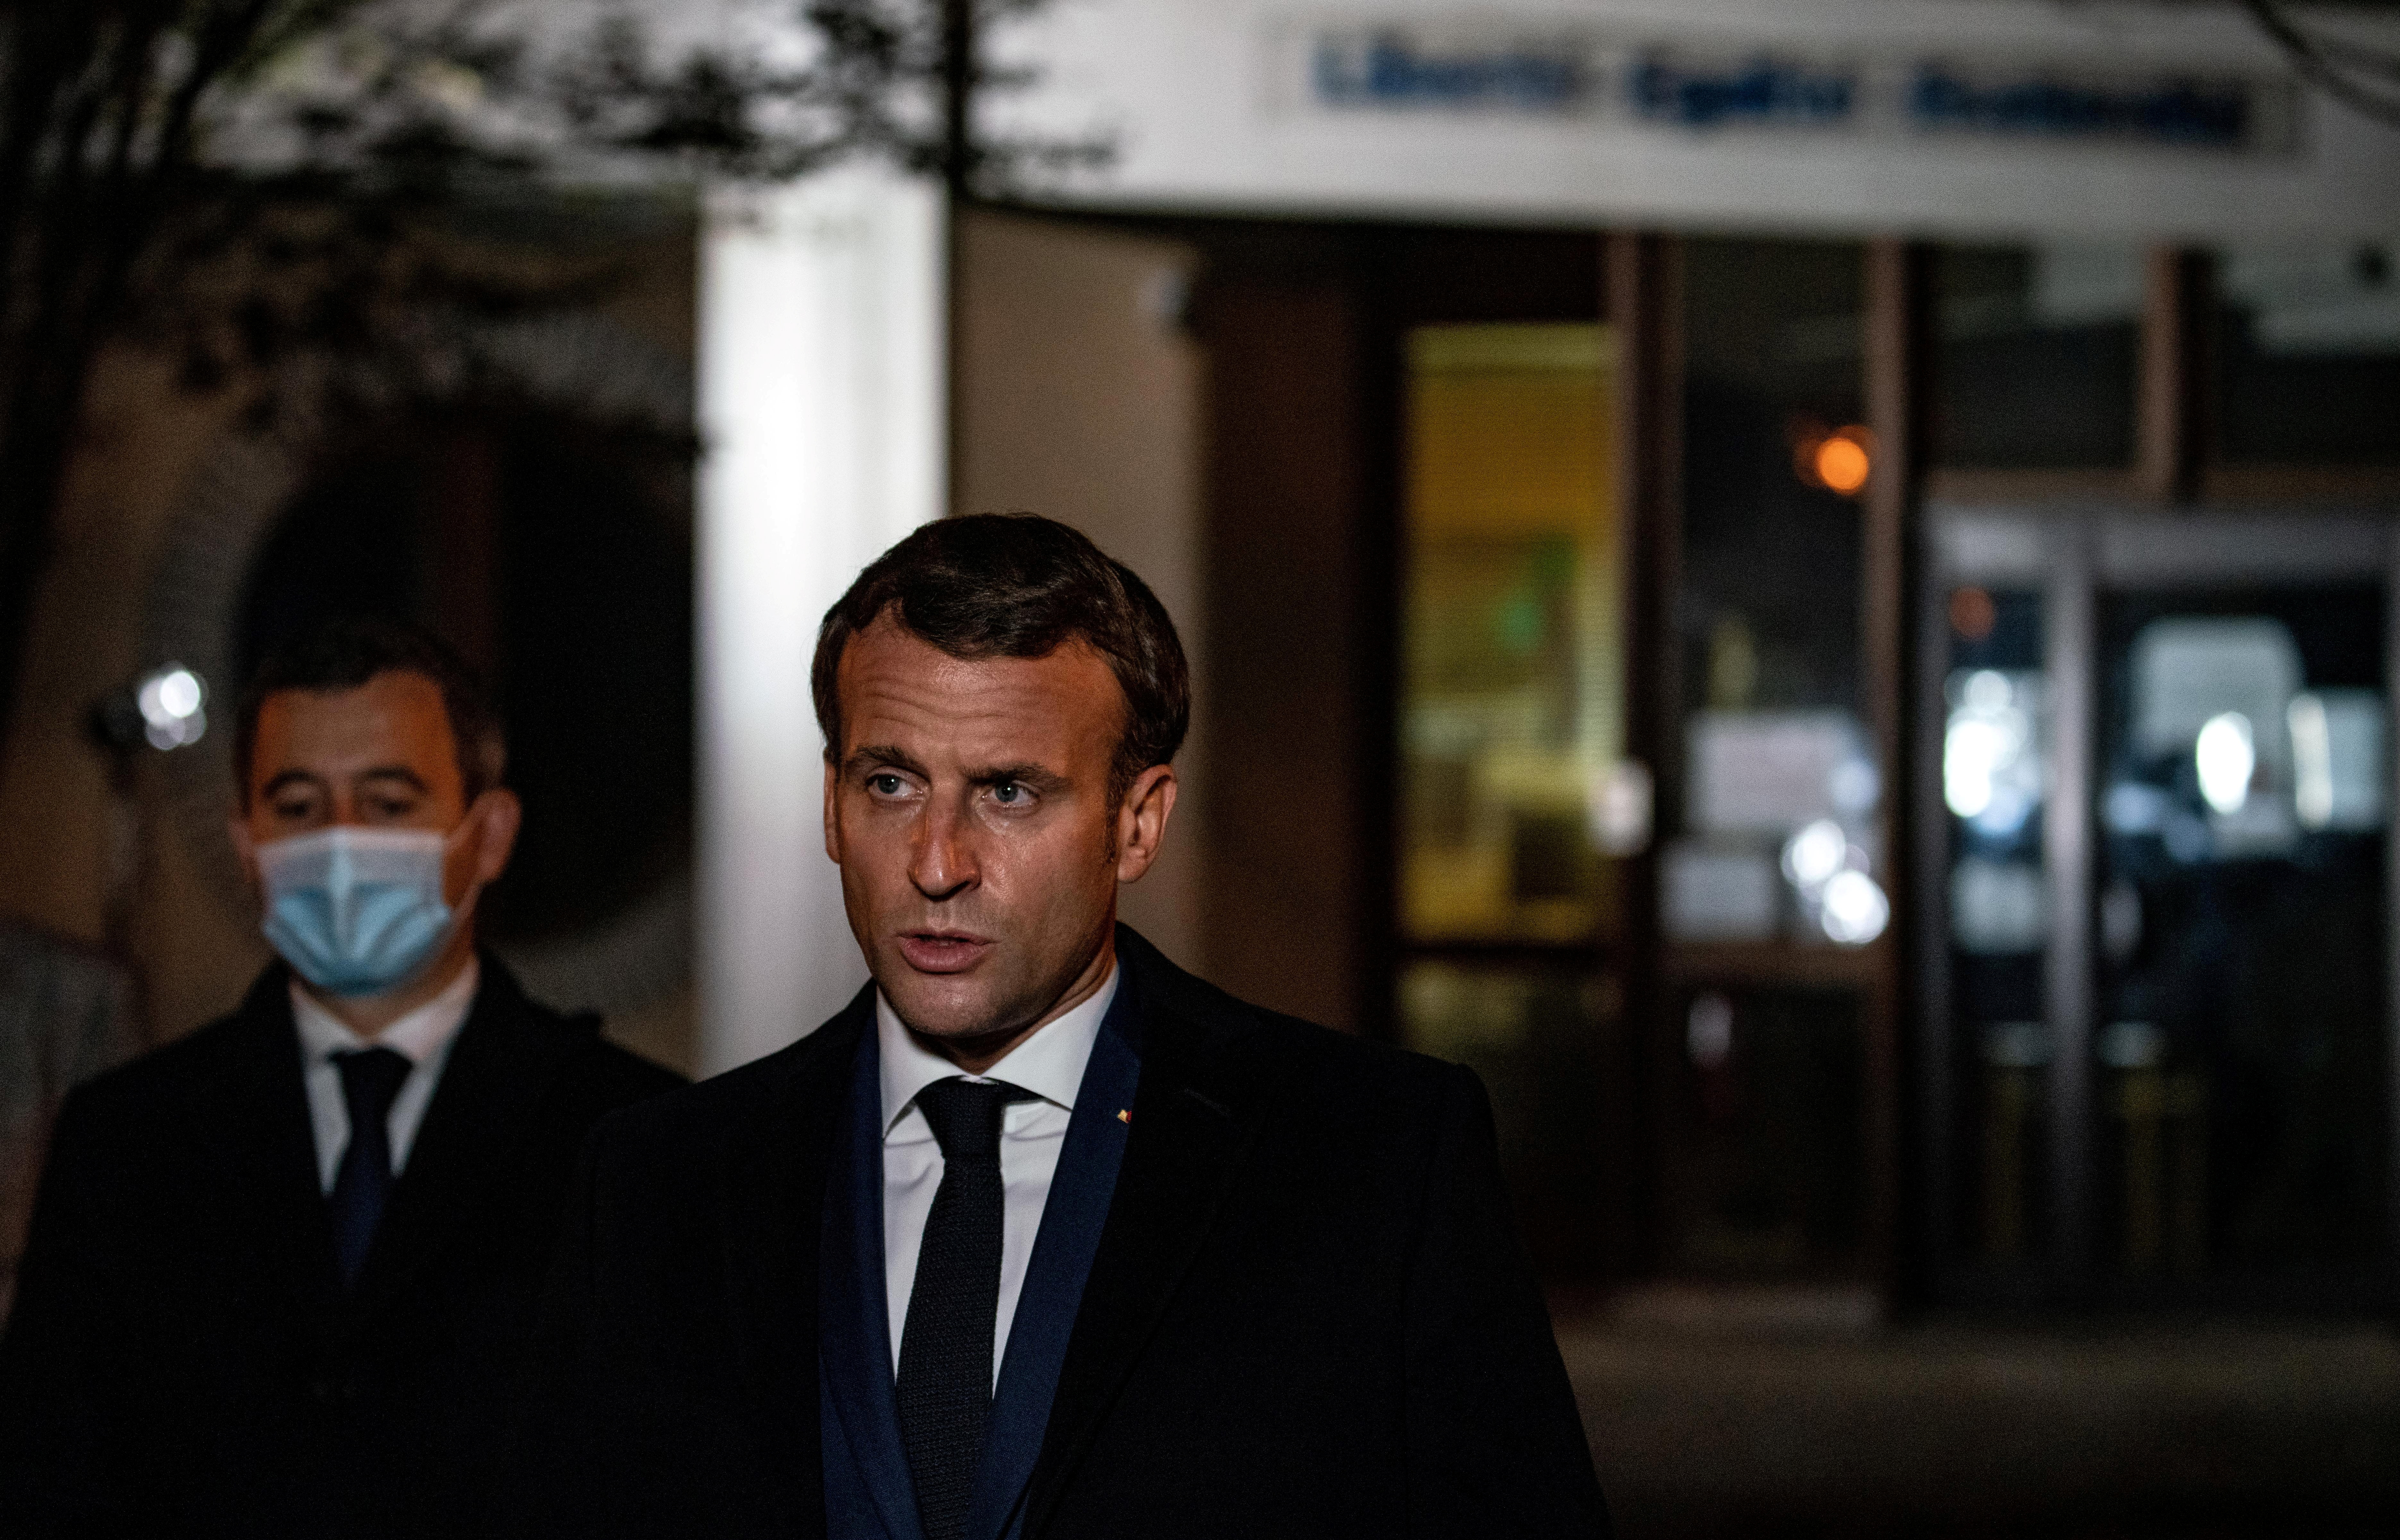 French President Emmanuel Macron flanked by French Interior Minister Gerald Darmanin speaks following a stabbing attack in the Conflans-Sainte-Honorine suburb of Paris, France, October 16, 2020. Abdulmonam Eassa/Pool via REUTERS